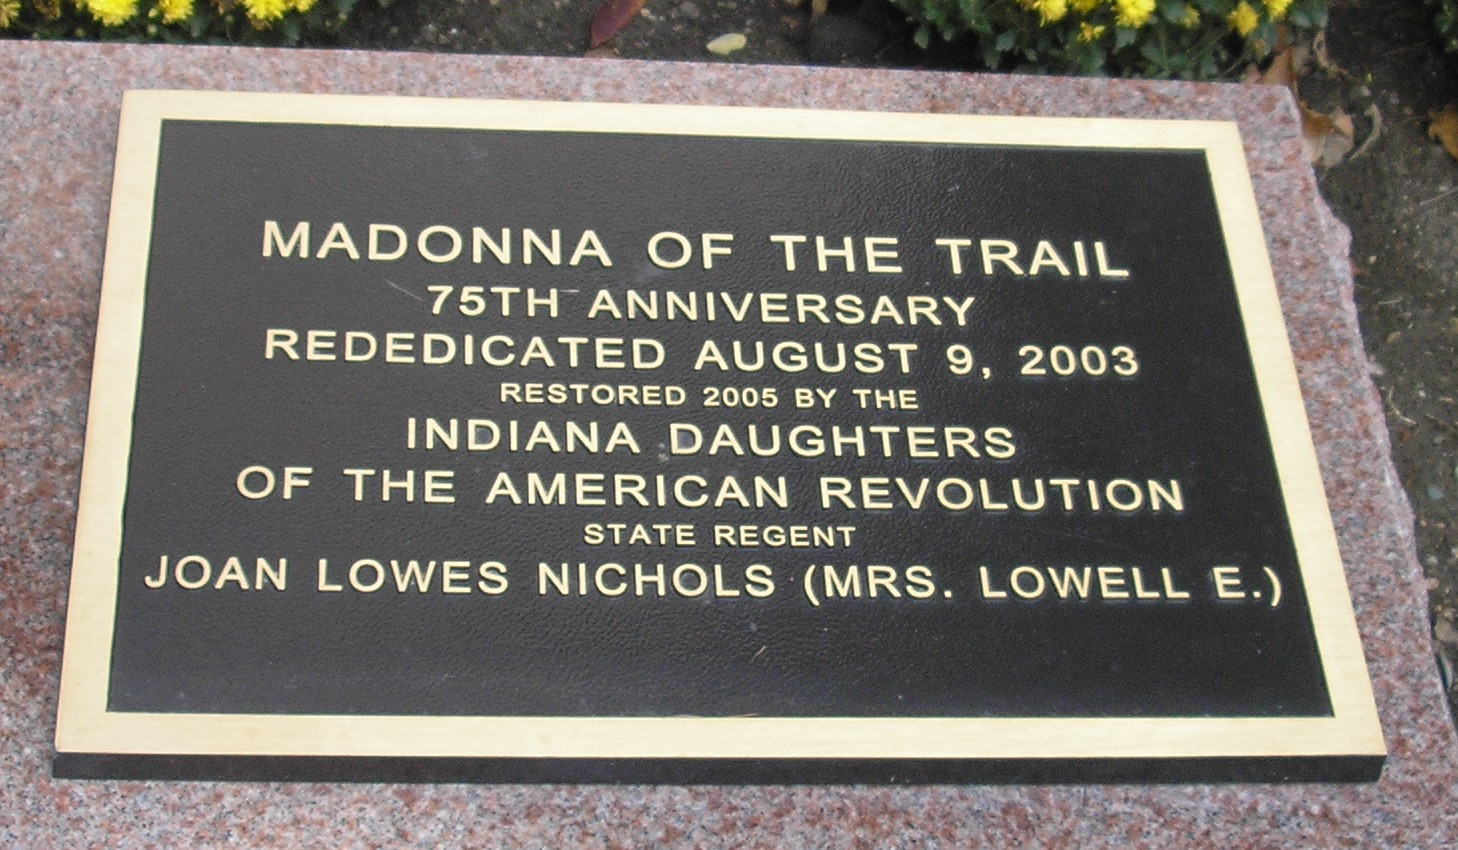 75th anniversary plaque. Photo by Cynthia Prescott.